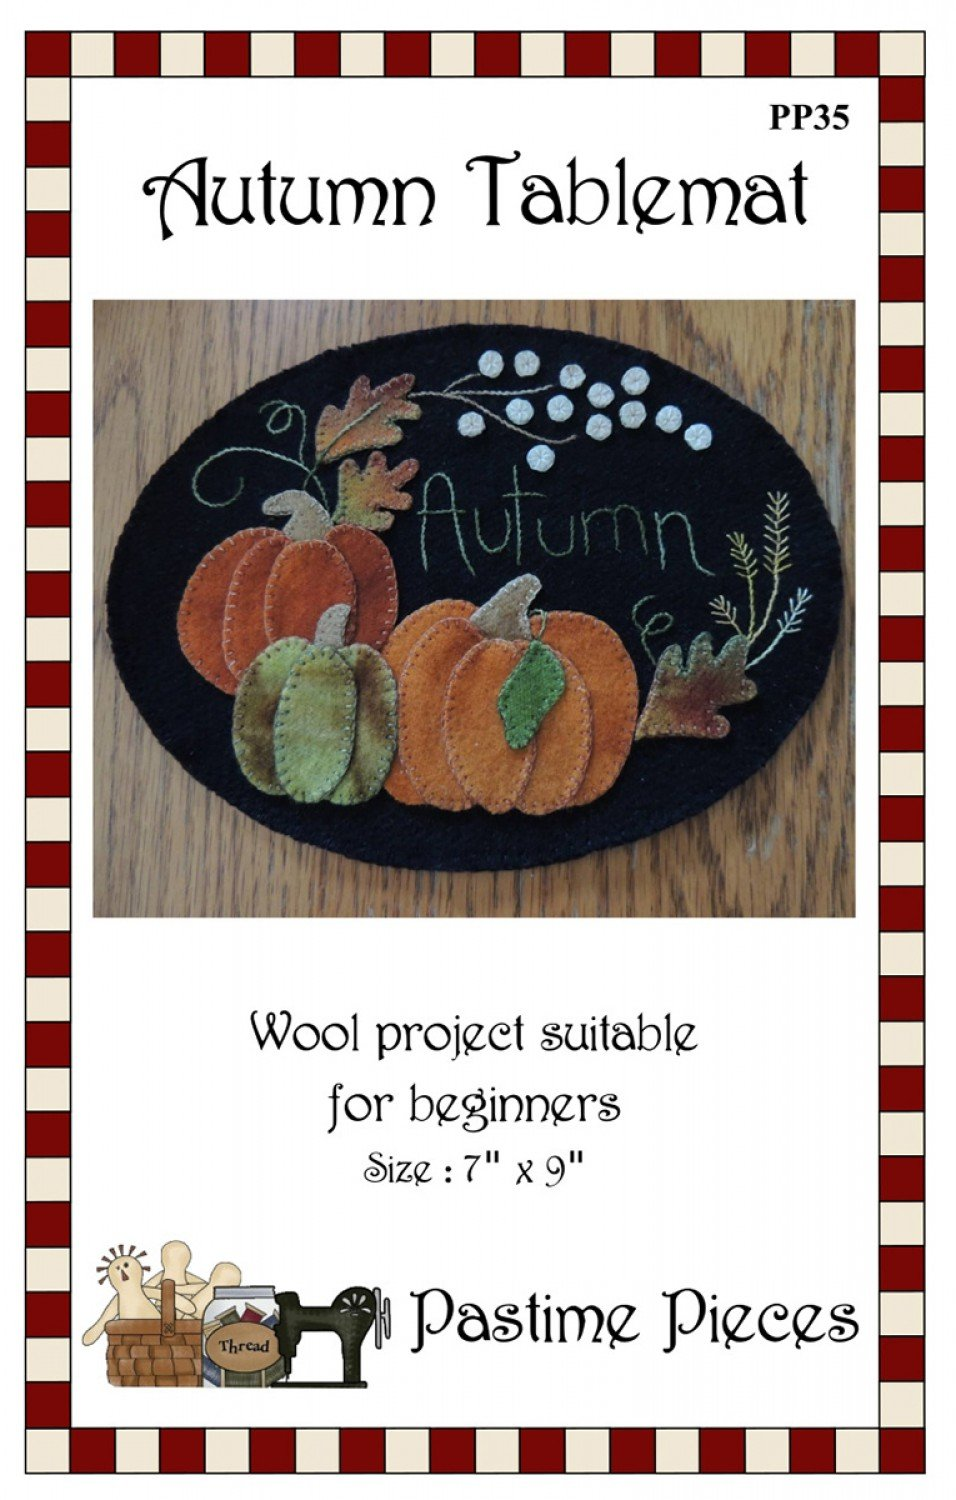 Autumn Tablemat Pattern PP35